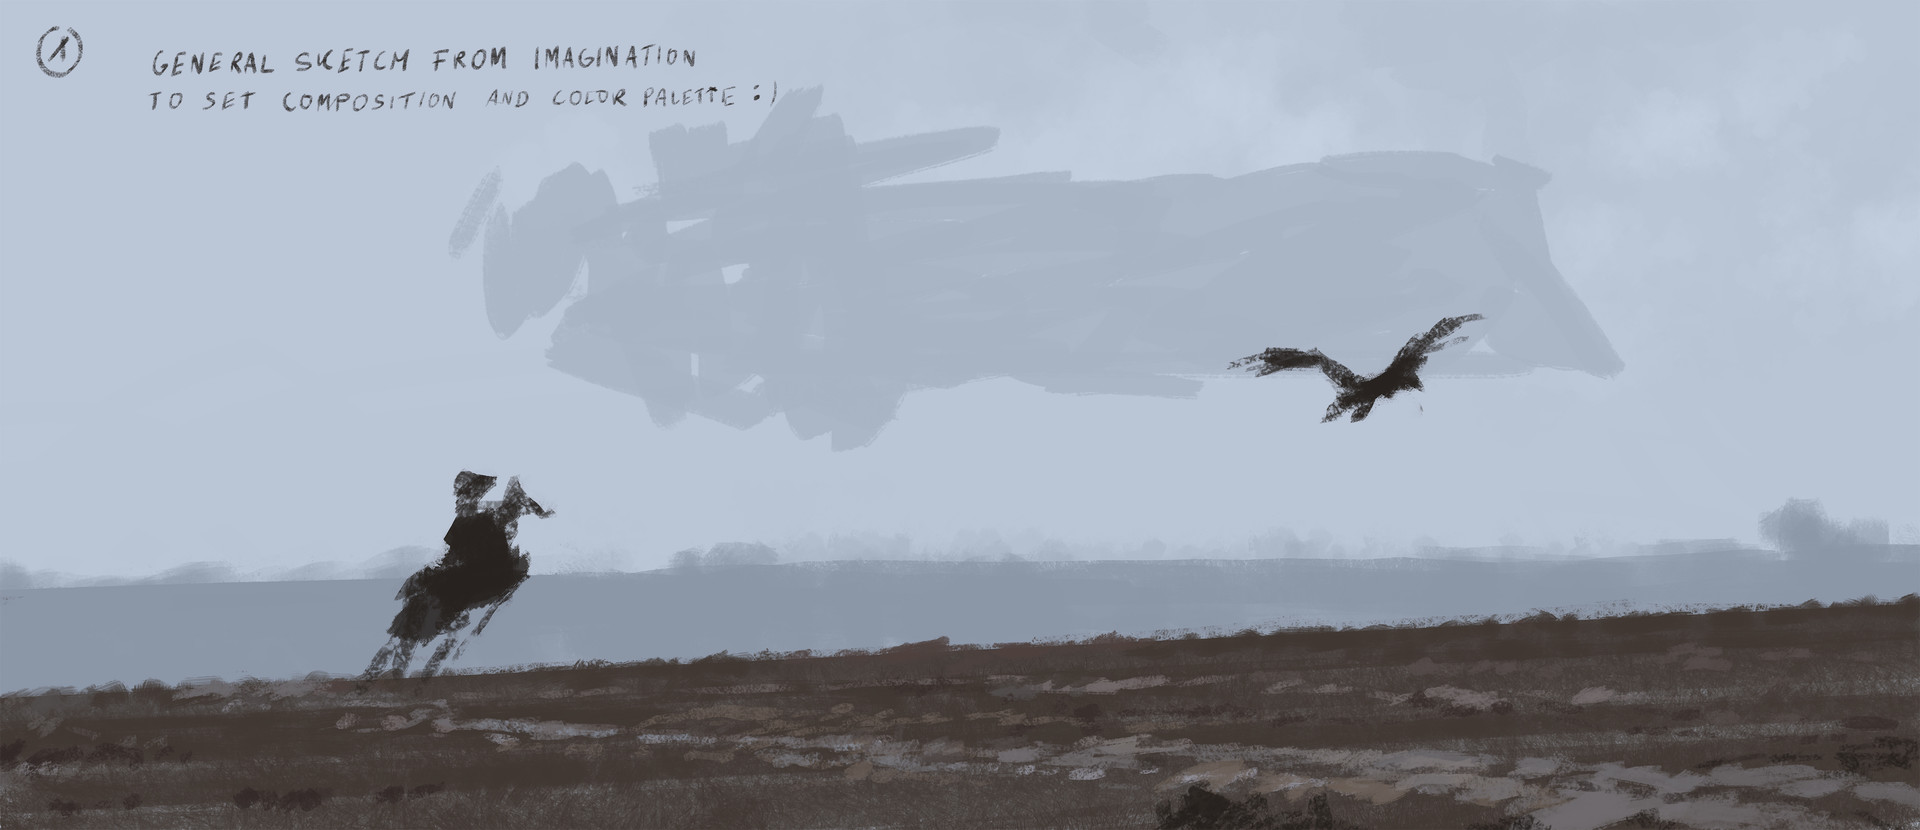 Jakub rozalski 1920 on the wings of the wind process00